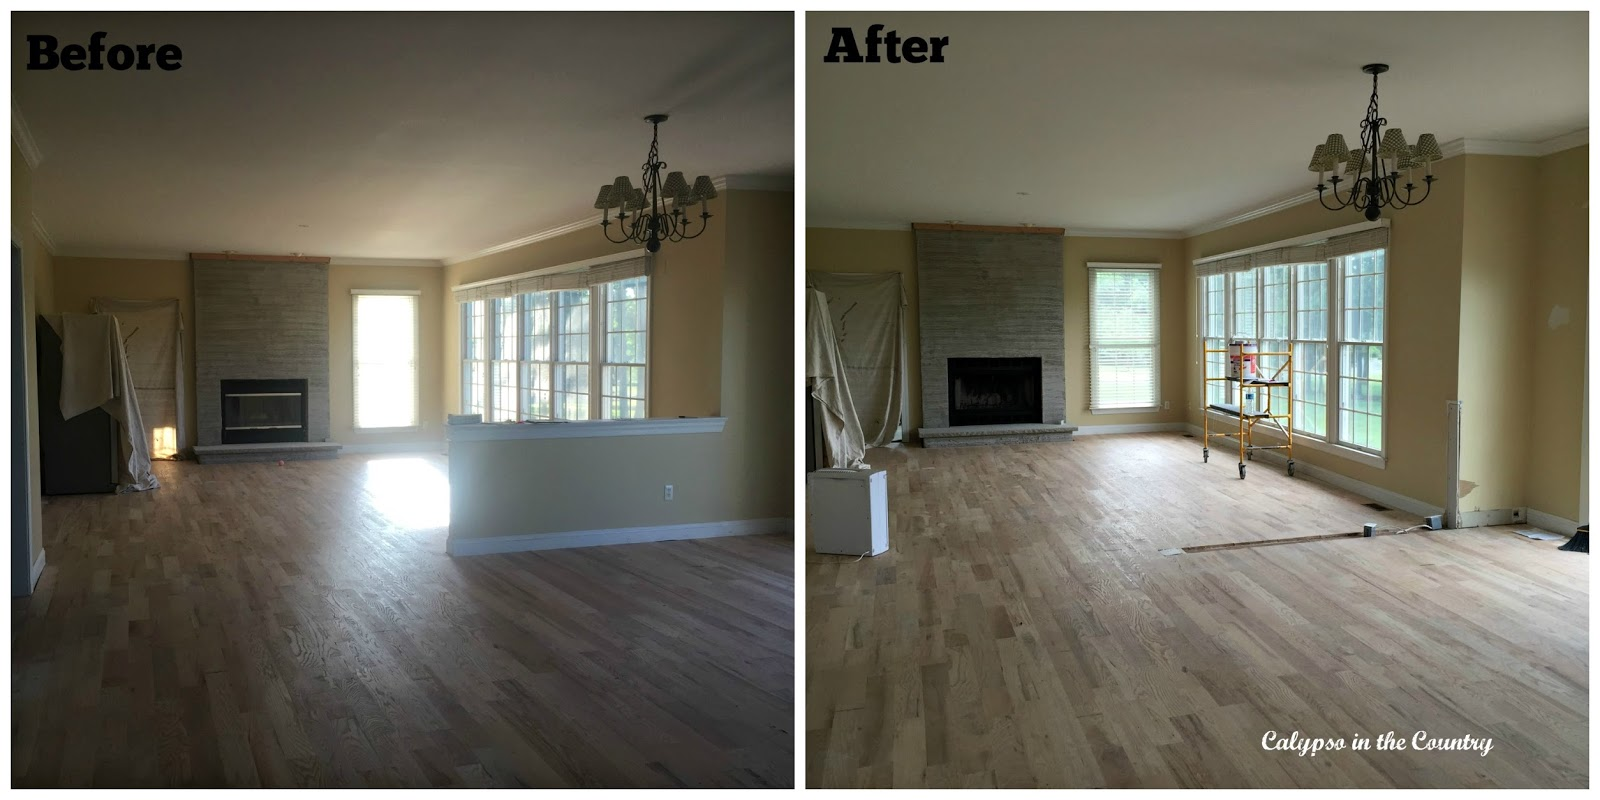 Half Wall - Before and After